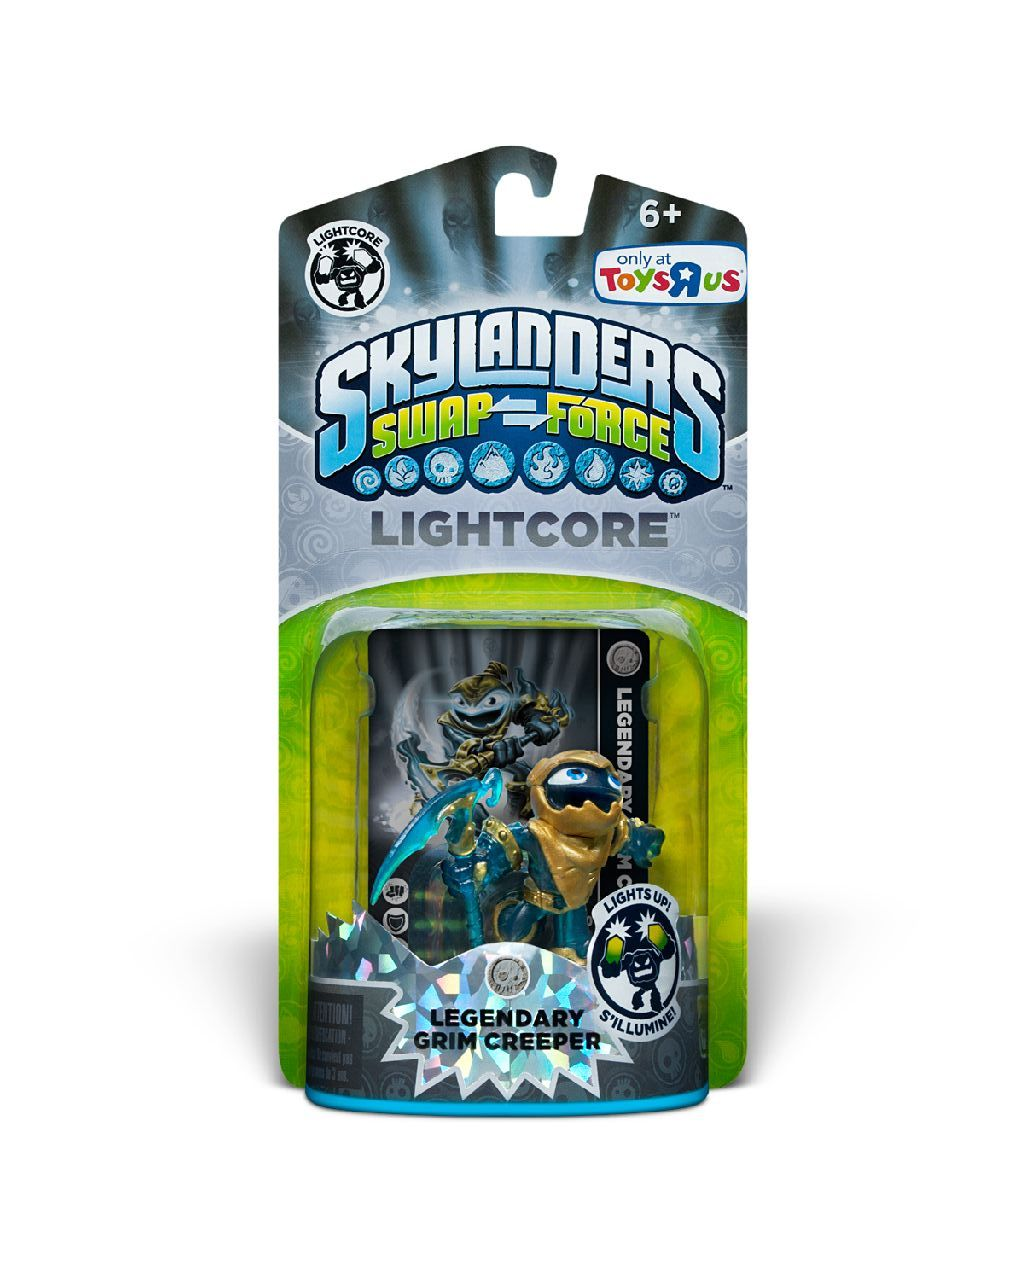 Skylanders Toys R Us : Previous of next